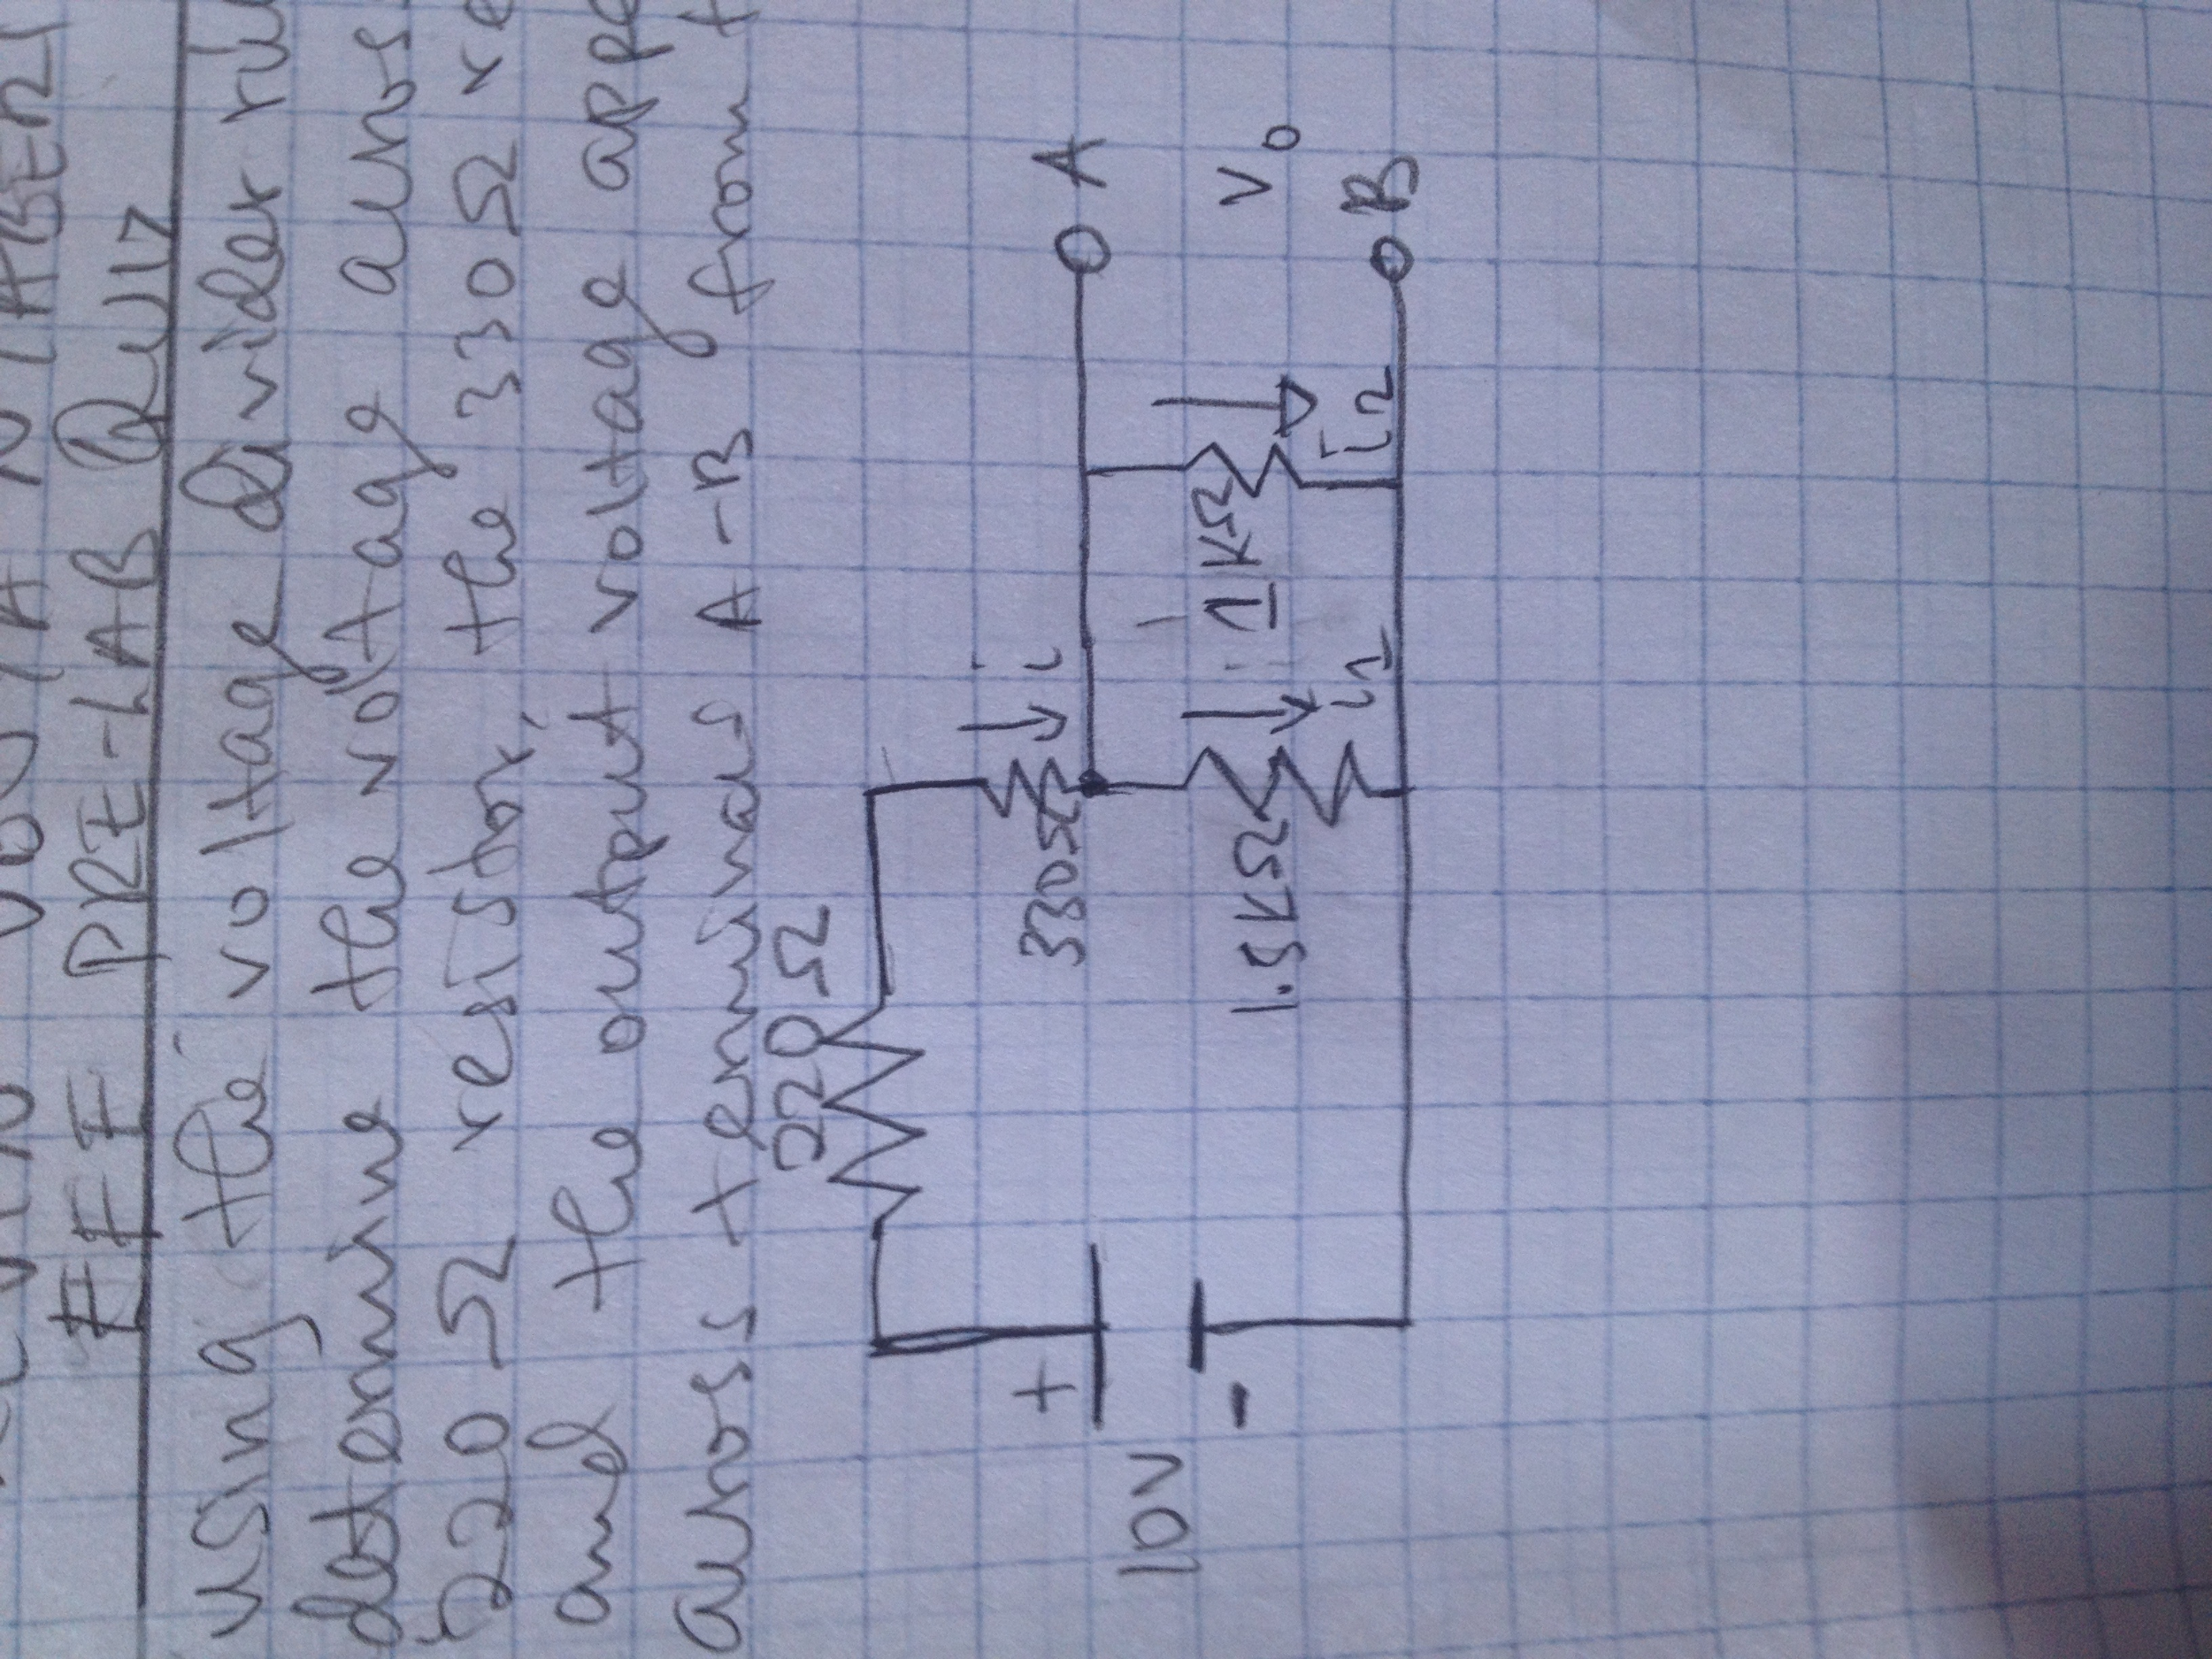 A. Using the voltage divider rule, determine the v